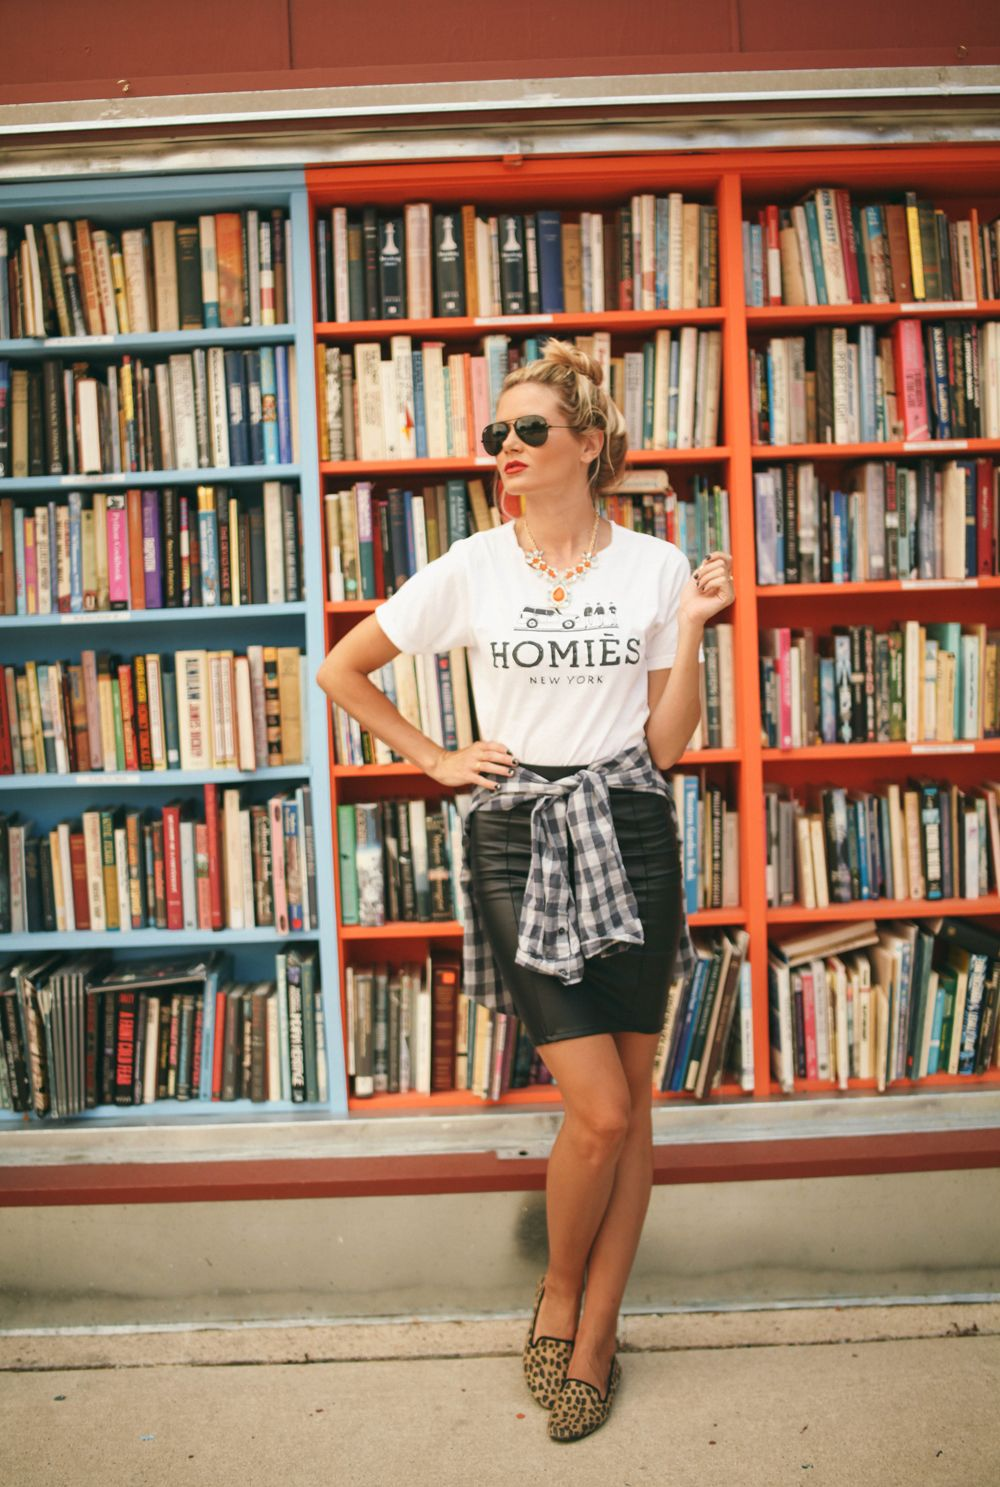 http://barefootblonde.com/2013/08/nila-skirt-giveaway.html#comment-19147 Love the t-shirt, leather pencil skirt and leopard flats